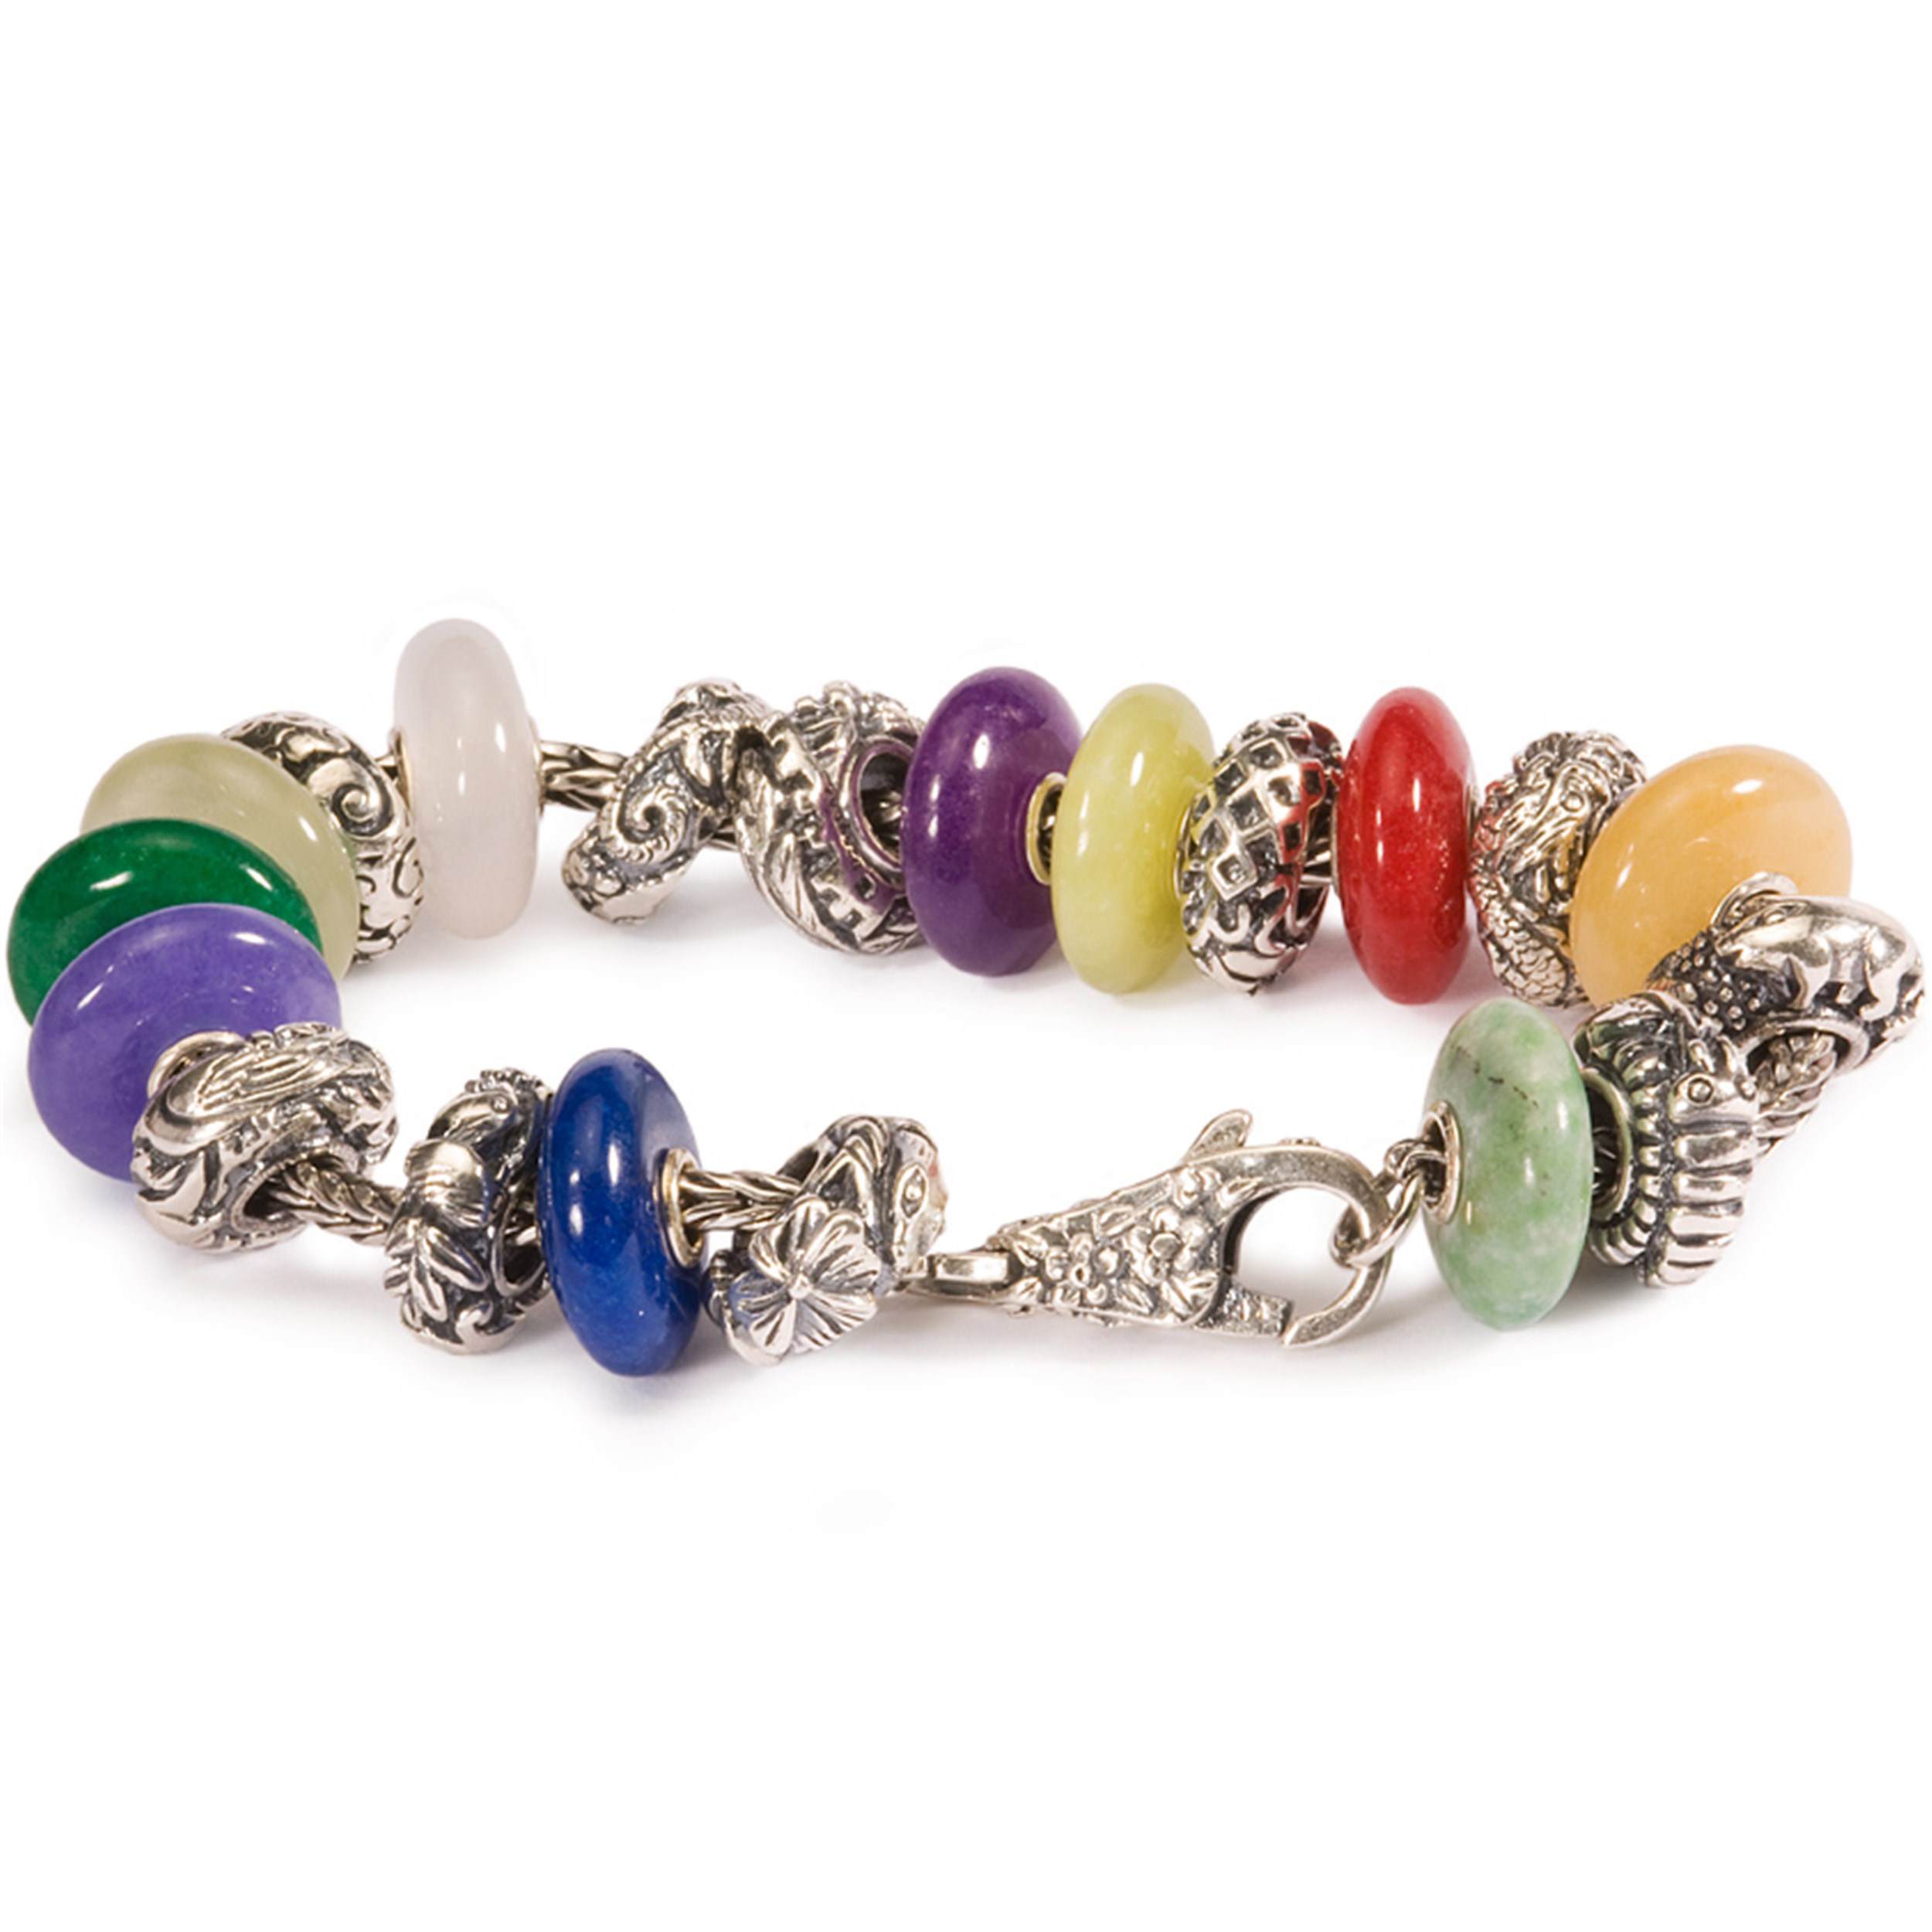 sito affidabile 03bd9 042c4 Trollbeads | China Limited Edition - Trollbeads.com